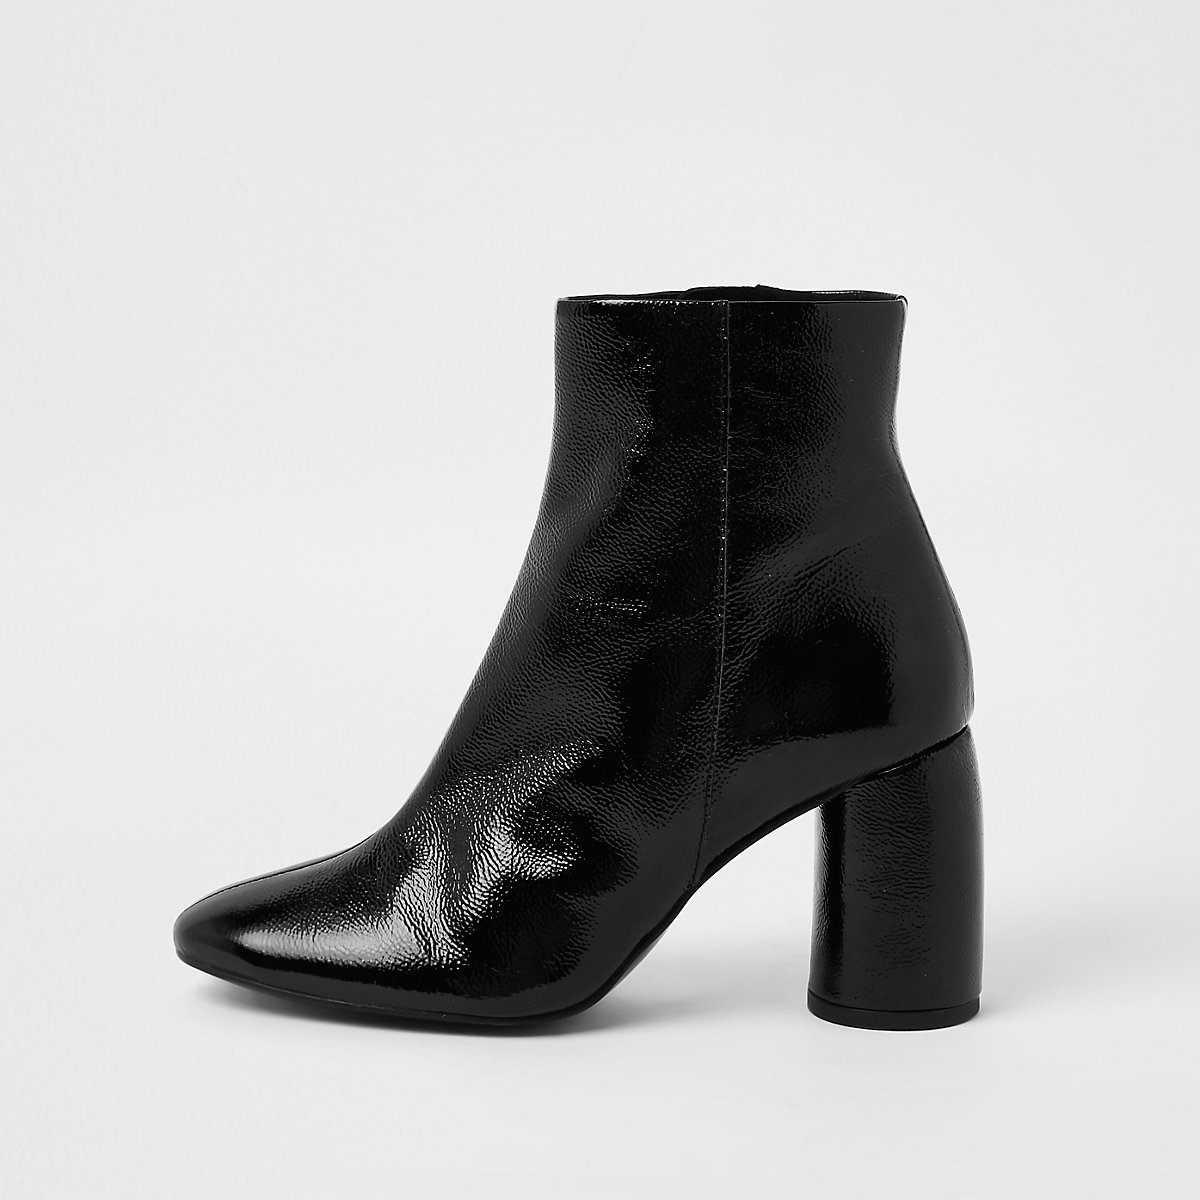 Black shiny leather bubble heel ankle boots